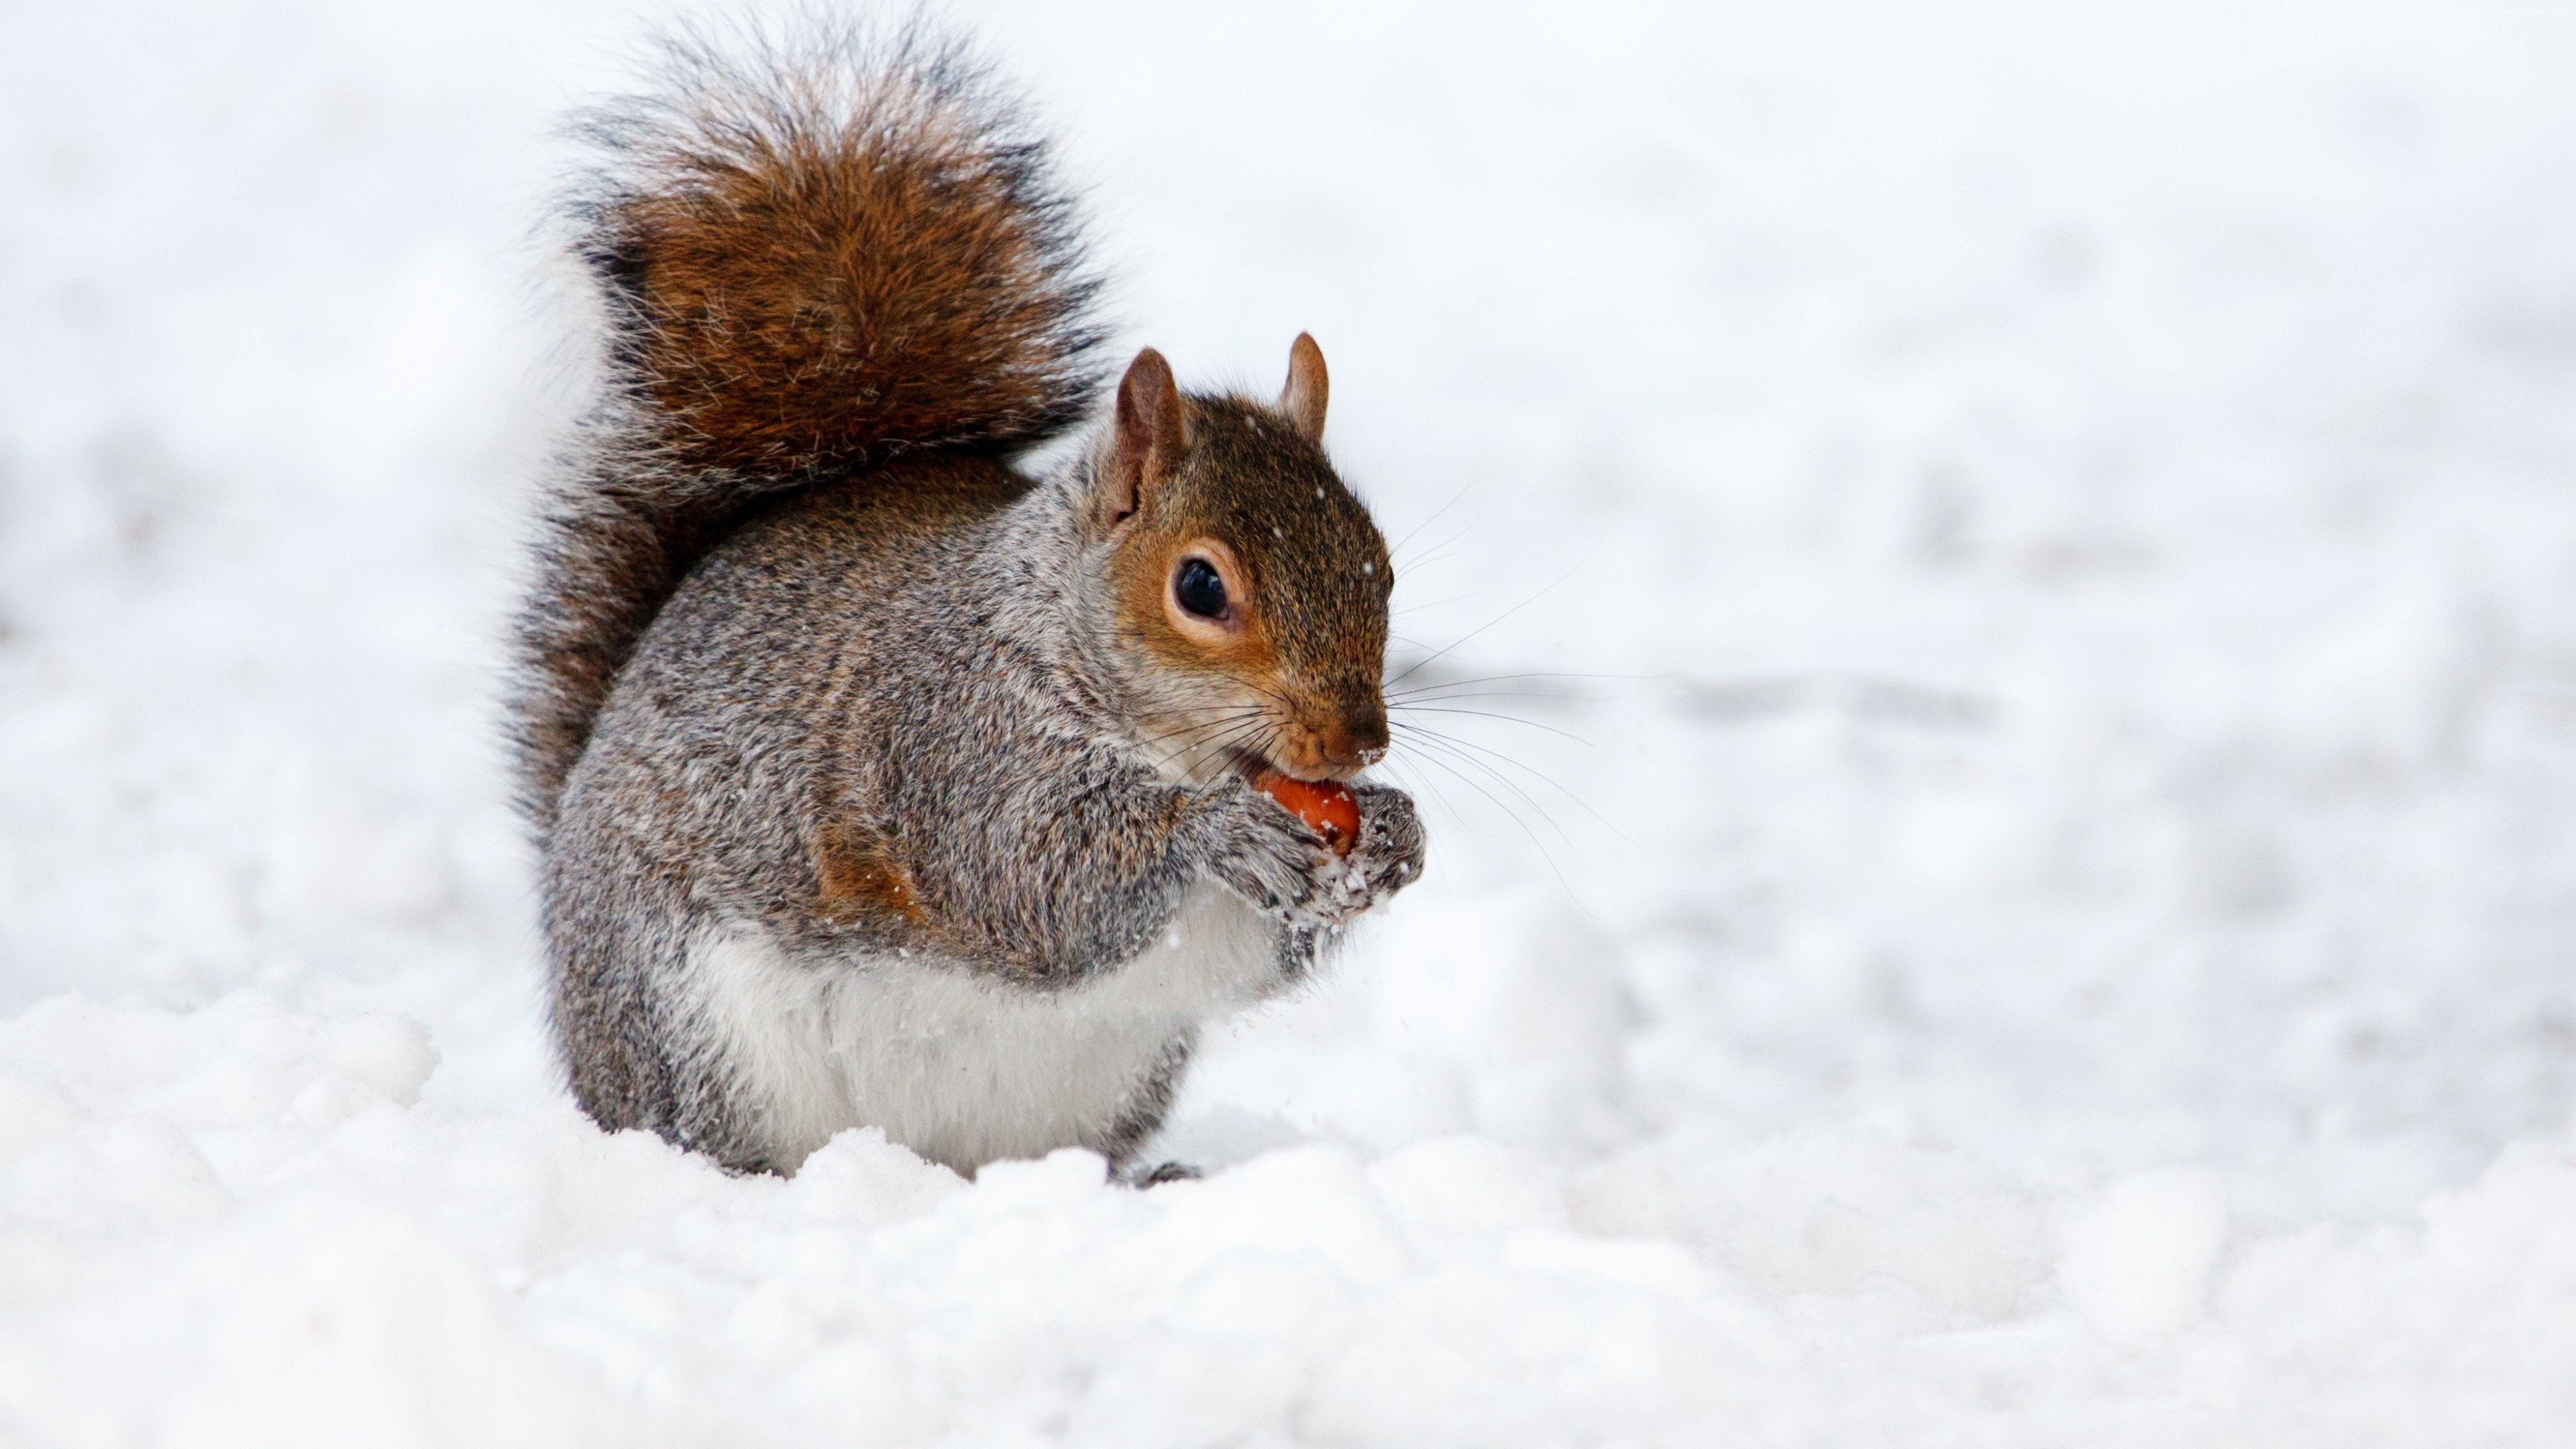 Wallpaper squirrel, cute animals, snow, winter, 4k, Animals